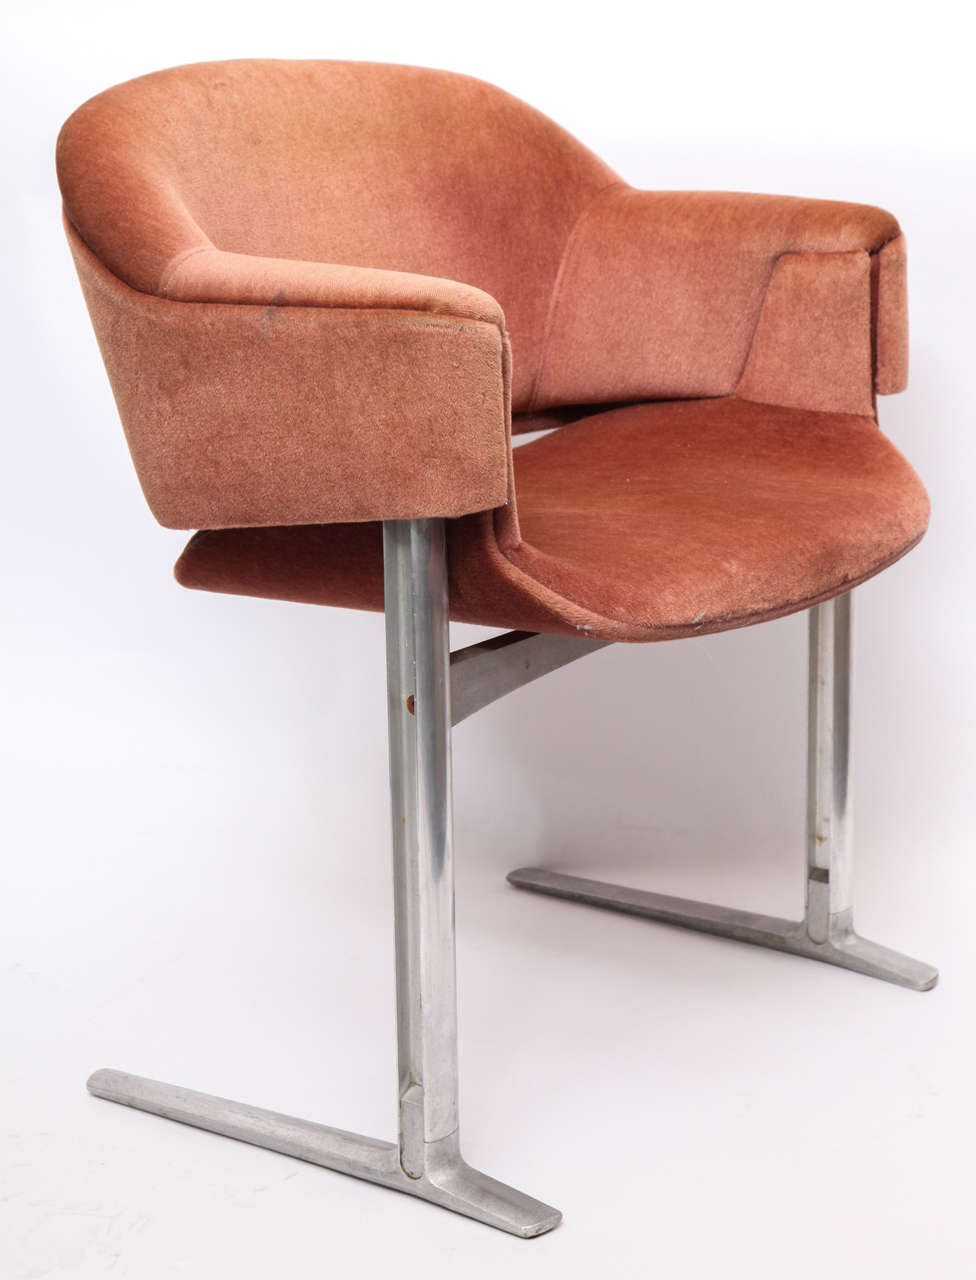 pair of  modernist chairs from qe race line by robert  - pair of  modernist chairs from qe race line by robert heritage